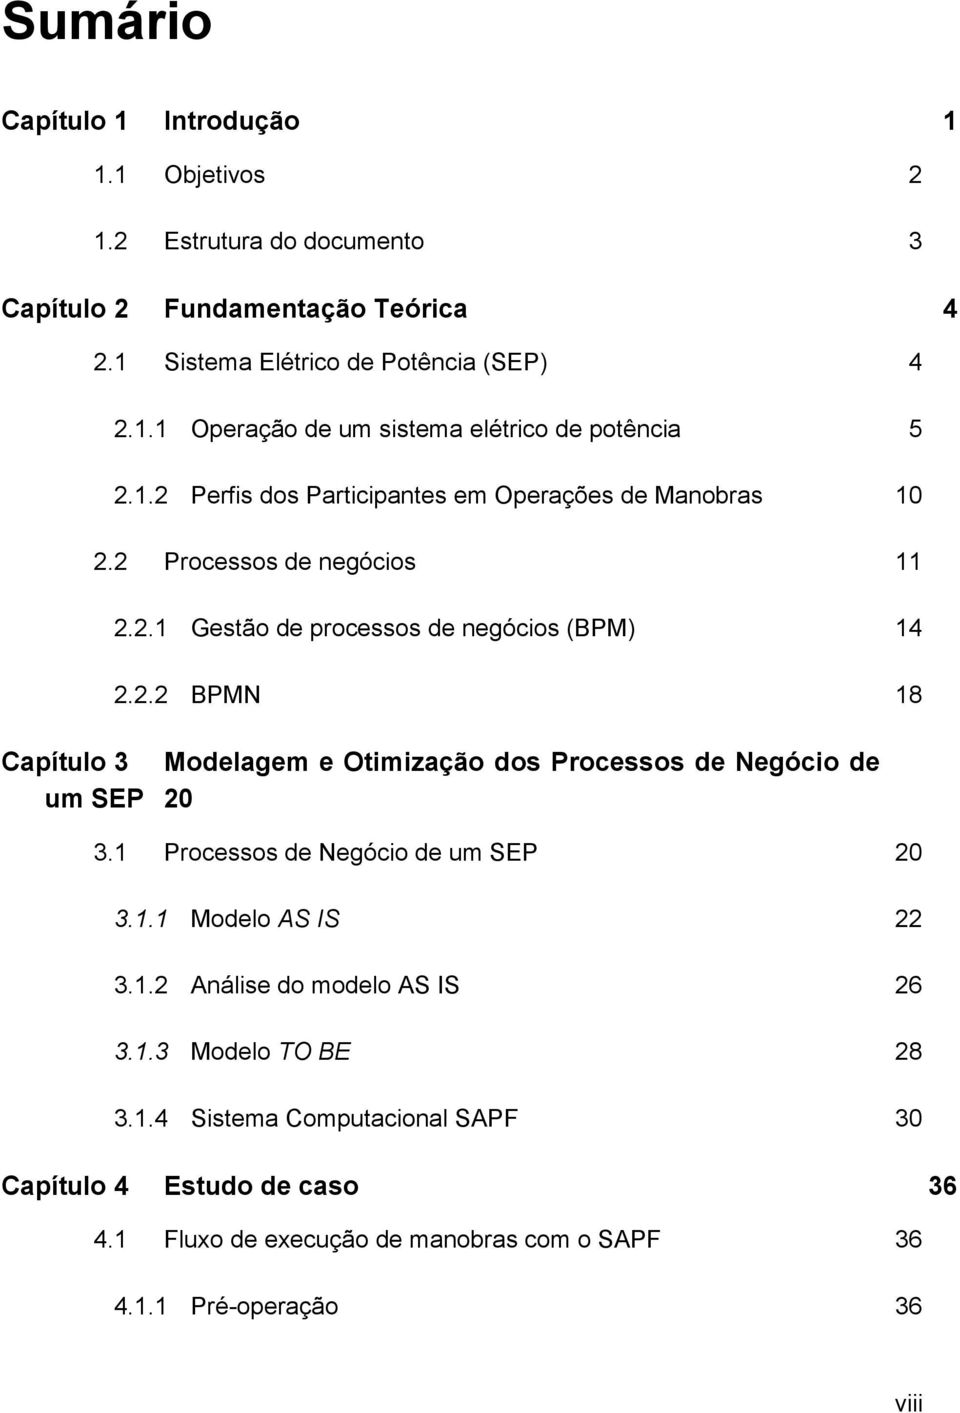 1 Processos de Negócio de um SEP 20 3.1.1 Modelo AS IS 22 3.1.2 Análise do modelo AS IS 26 3.1.3 Modelo TO BE 28 3.1.4 Sistema Computacional SAPF 30 Capítulo 4 Estudo de caso 36 4.